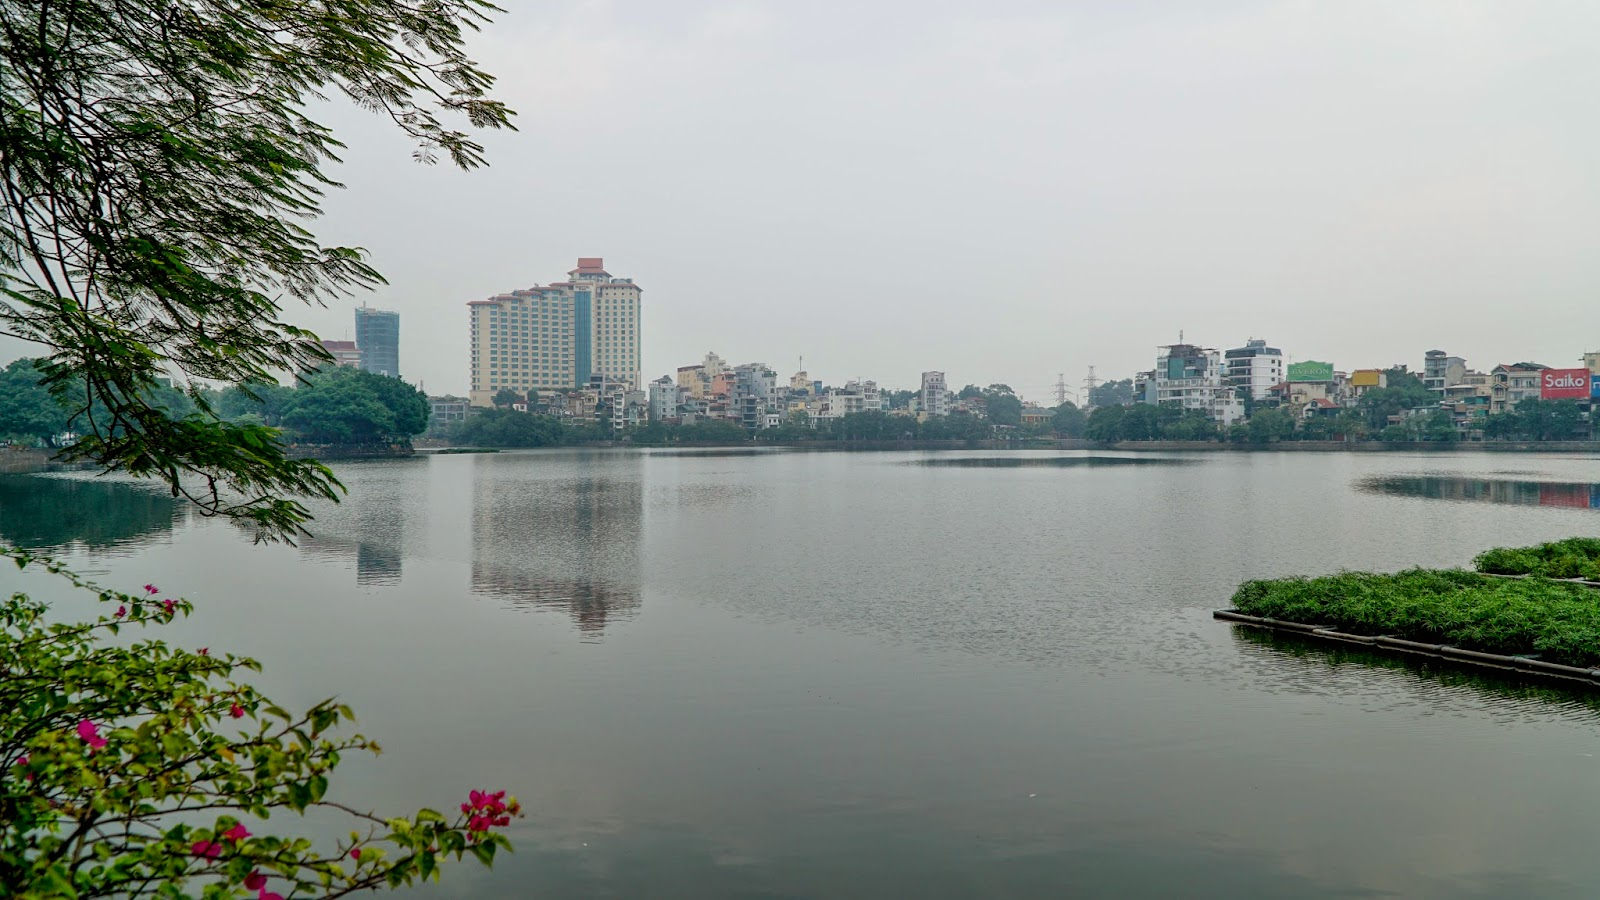 Another view of the West Lake, Hanoi